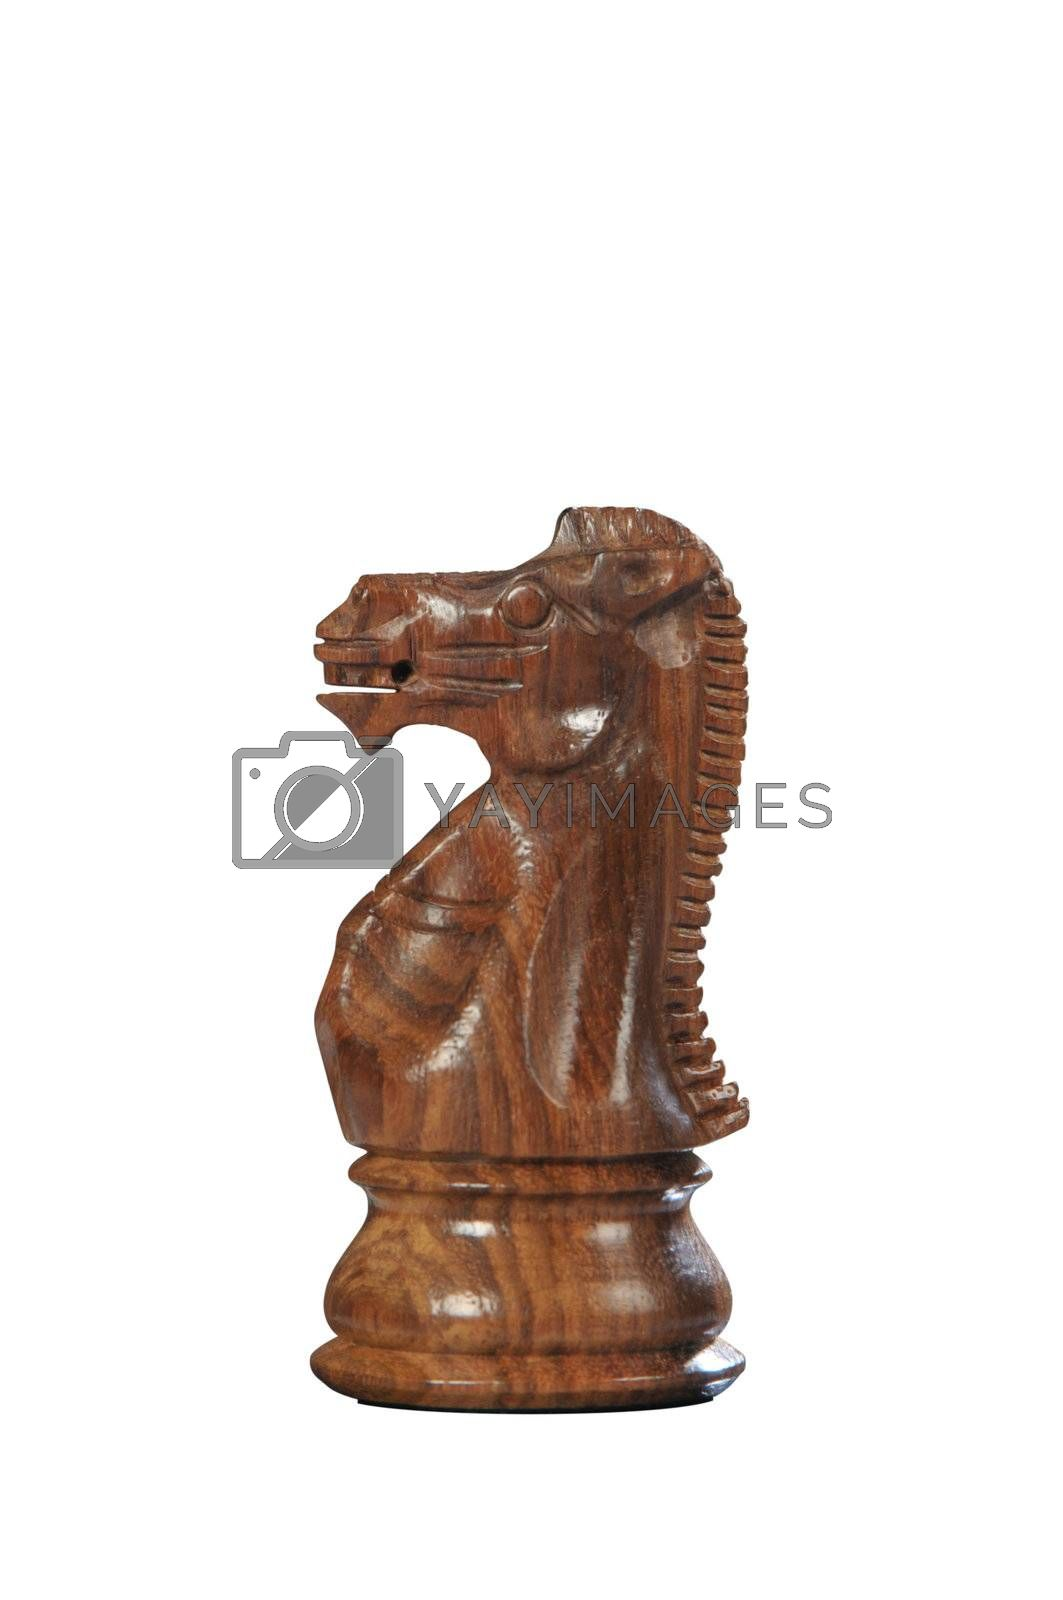 Black (brown) wooden horse - one of 12 different chess piece